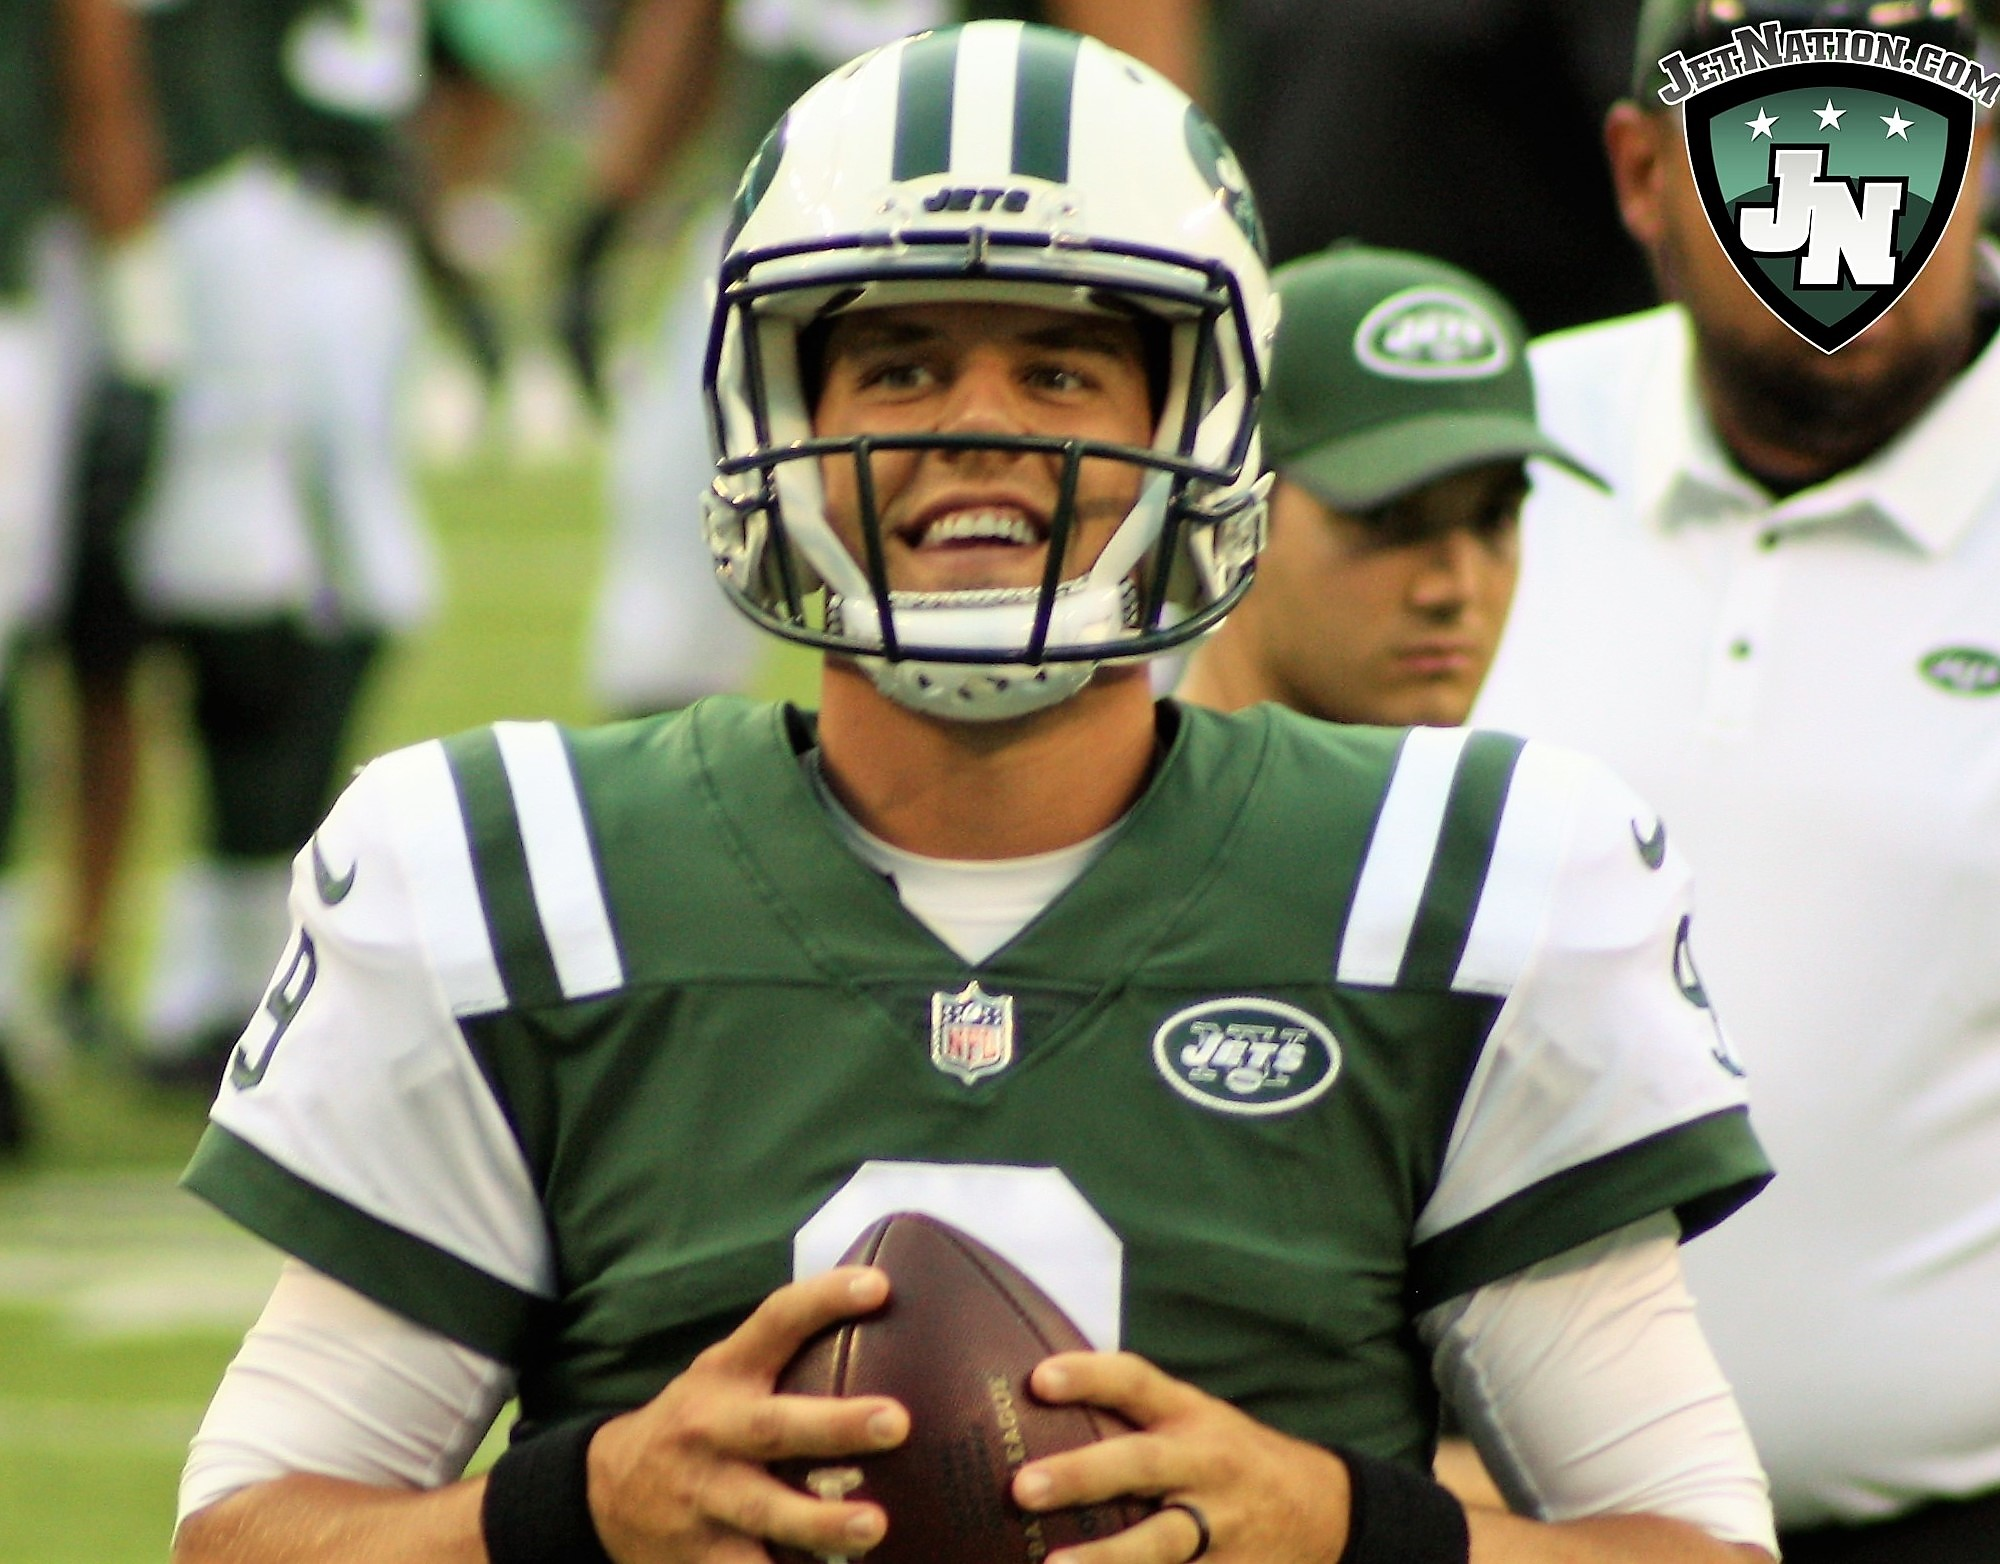 Report: Multiple Teams Interested in Trading for Jets' Petty